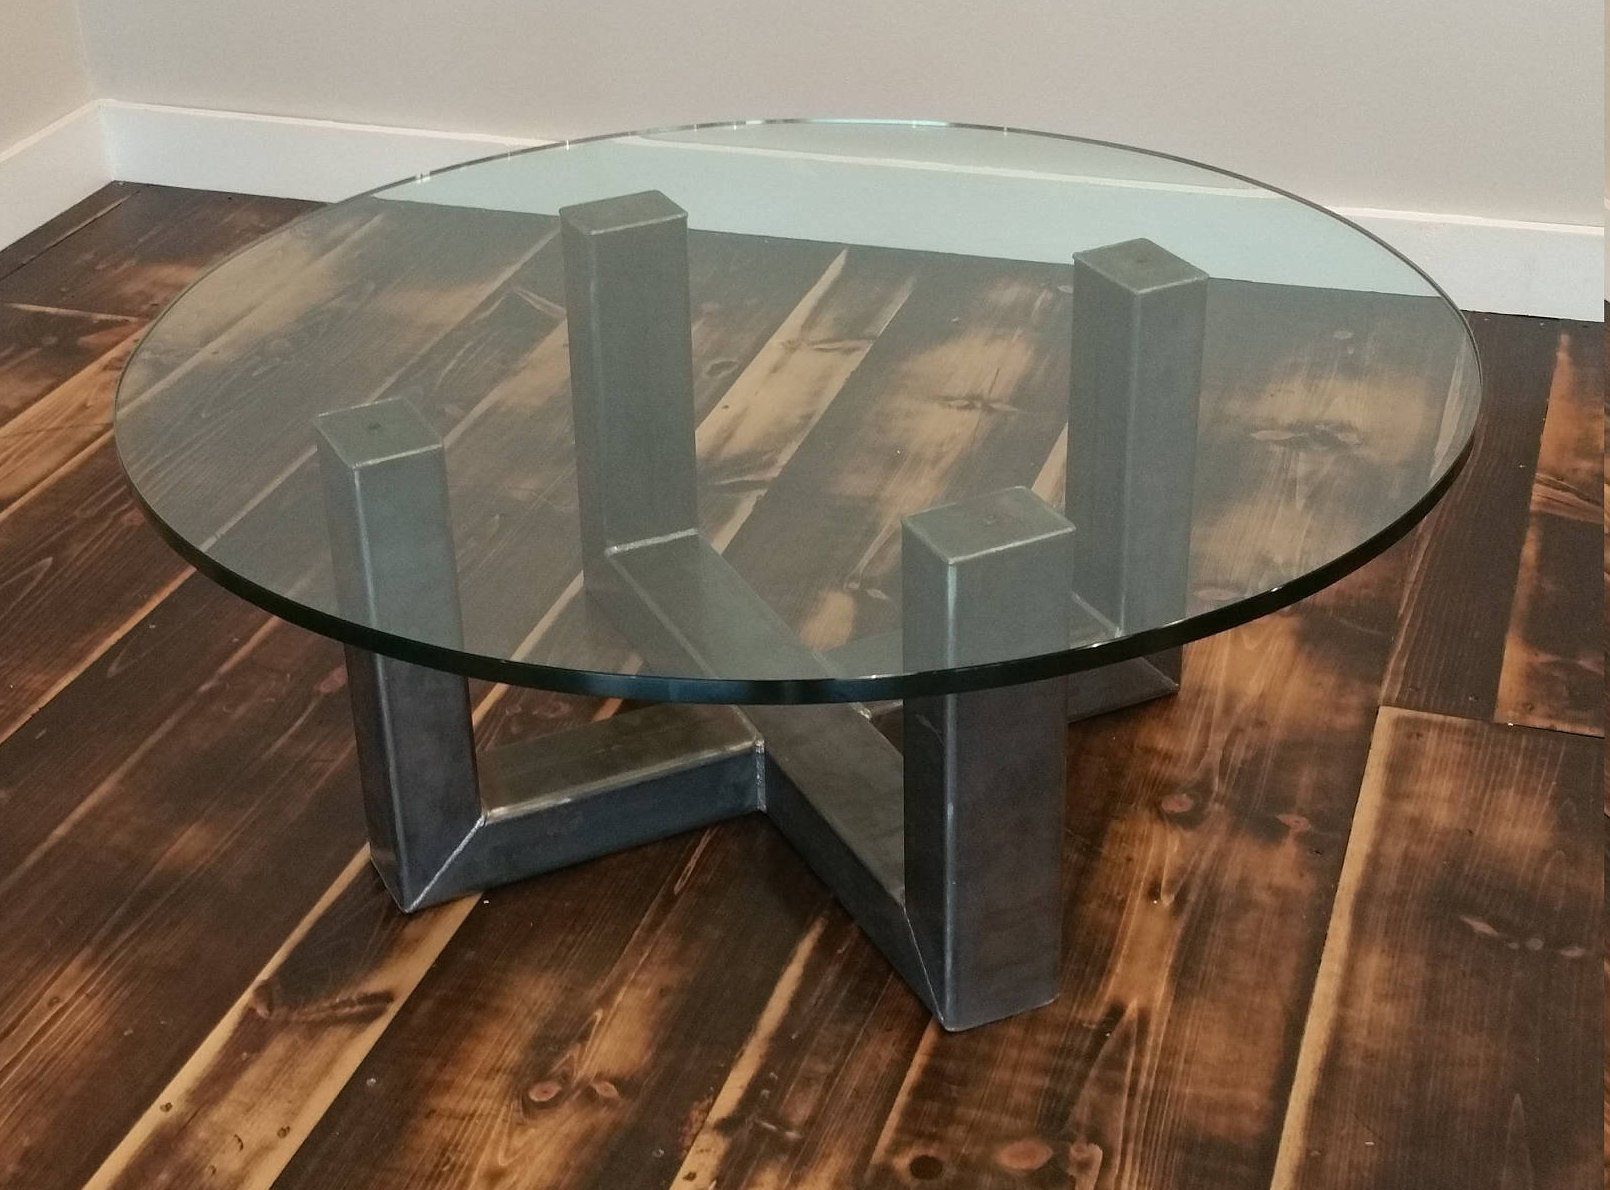 4 Post Industrial Coffee Table Reversible Glass Top Is Also Available In Circle Or Squ Round Glass Coffee Table Industrial Coffee Table Circle Dining Table [ 1190 x 1610 Pixel ]